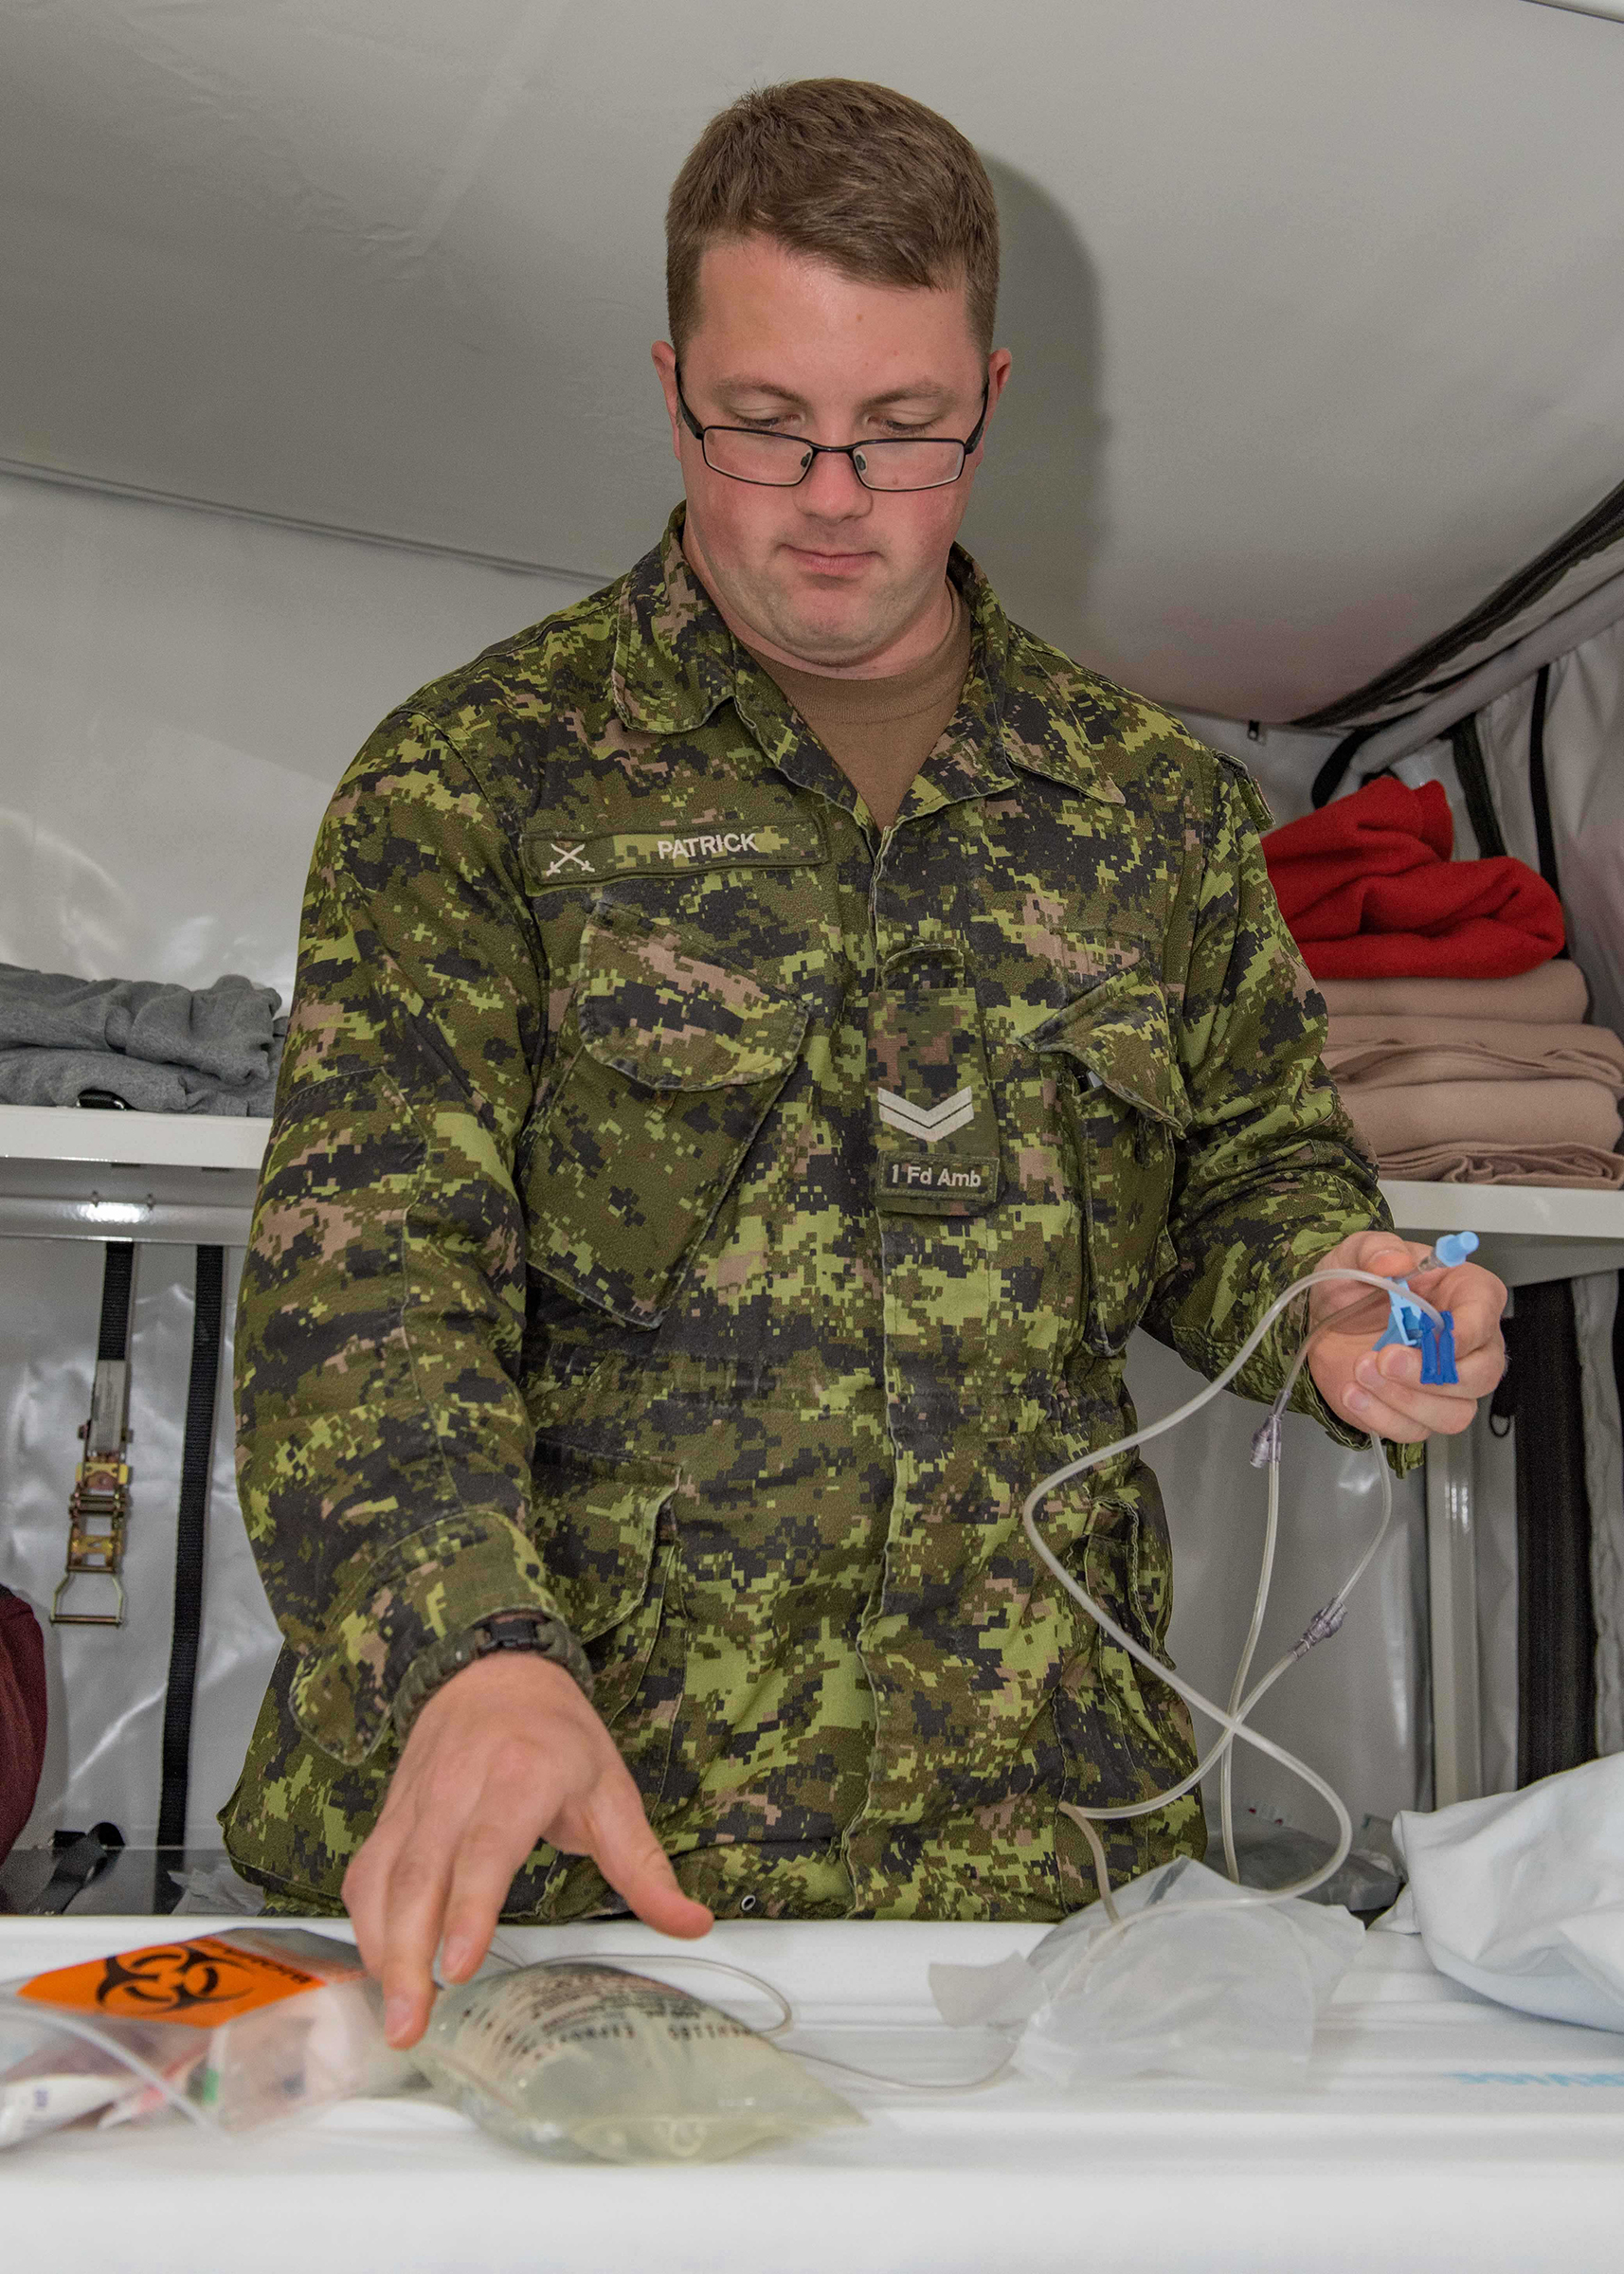 Corporal Sean Patrick, a medical technician with 1 Field Ambulance in Edmonton, Alberta, prepares intravenous fluid for a patient in the Mobile Medical Field Hospital during Exercise Maple Flag 50 at  4 Wing Cold Lake  on June 19, 2017. PHOTO: Master Corporal Heather MacRae, CK05-2017-0470-003